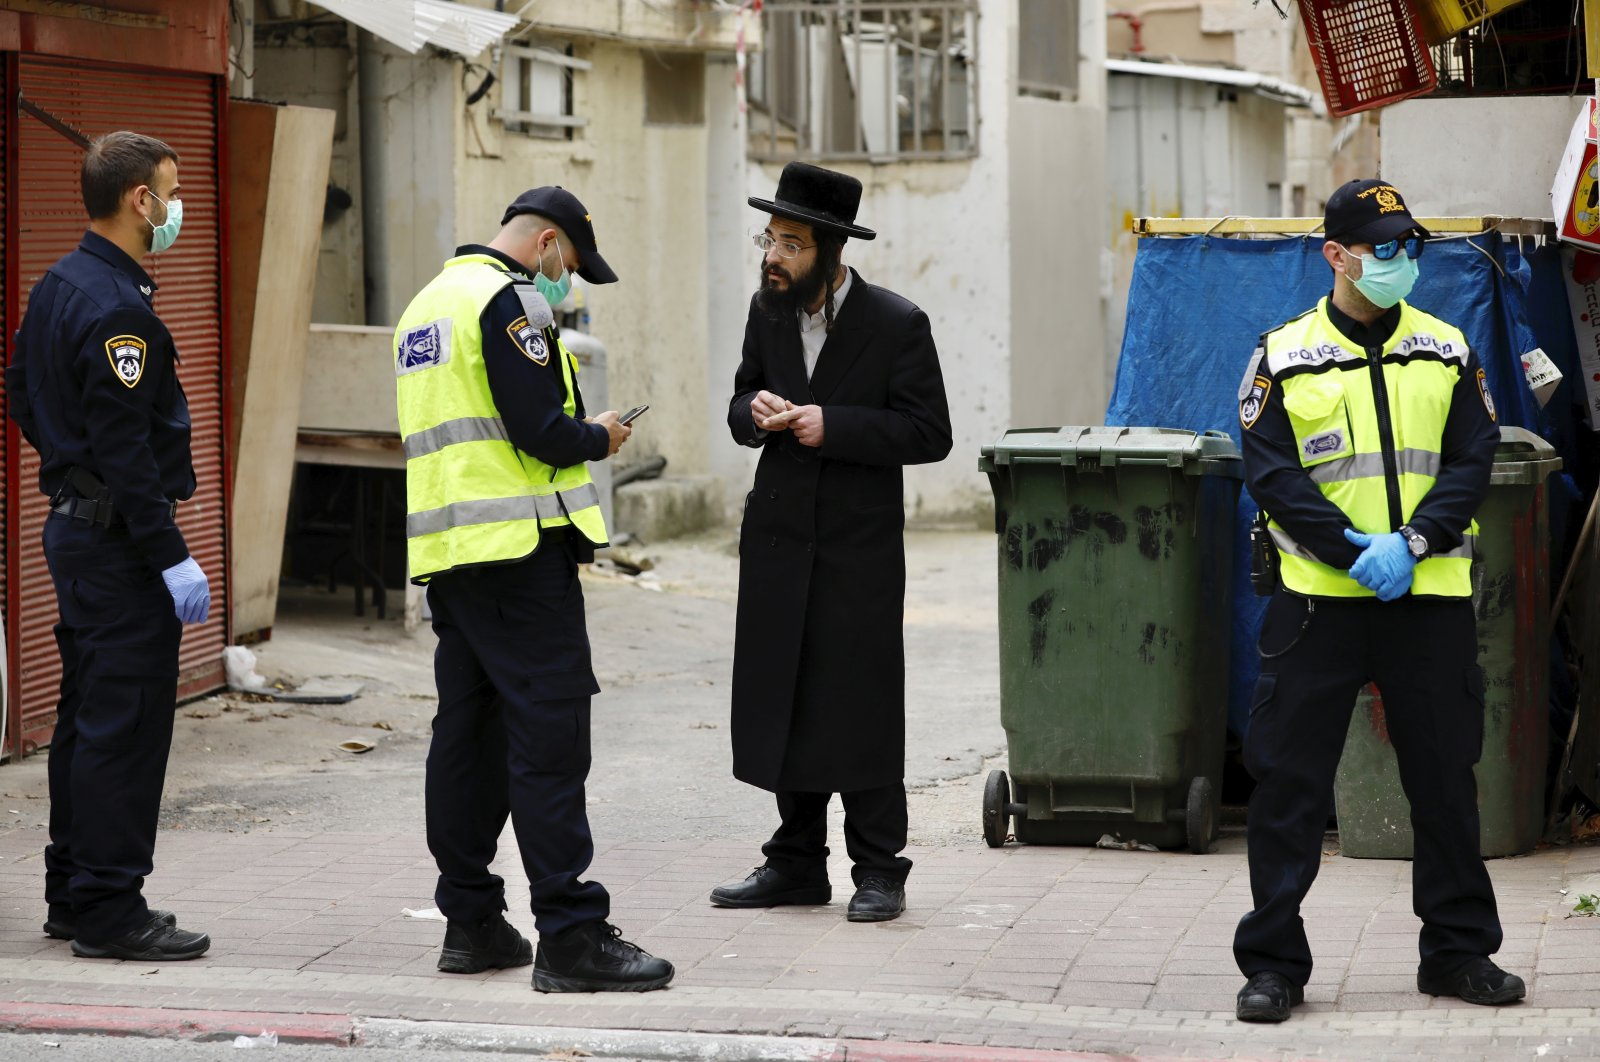 An ultra-Orthodox Jewish man is questioned by an Israeli police officer as part of the government's measures to stop the spread of the coronavirus, in the Orthodox city of Bnei Brak, a suburb of Tel Aviv, Israel, Tuesday, March 31, 2020. (AP Photo)